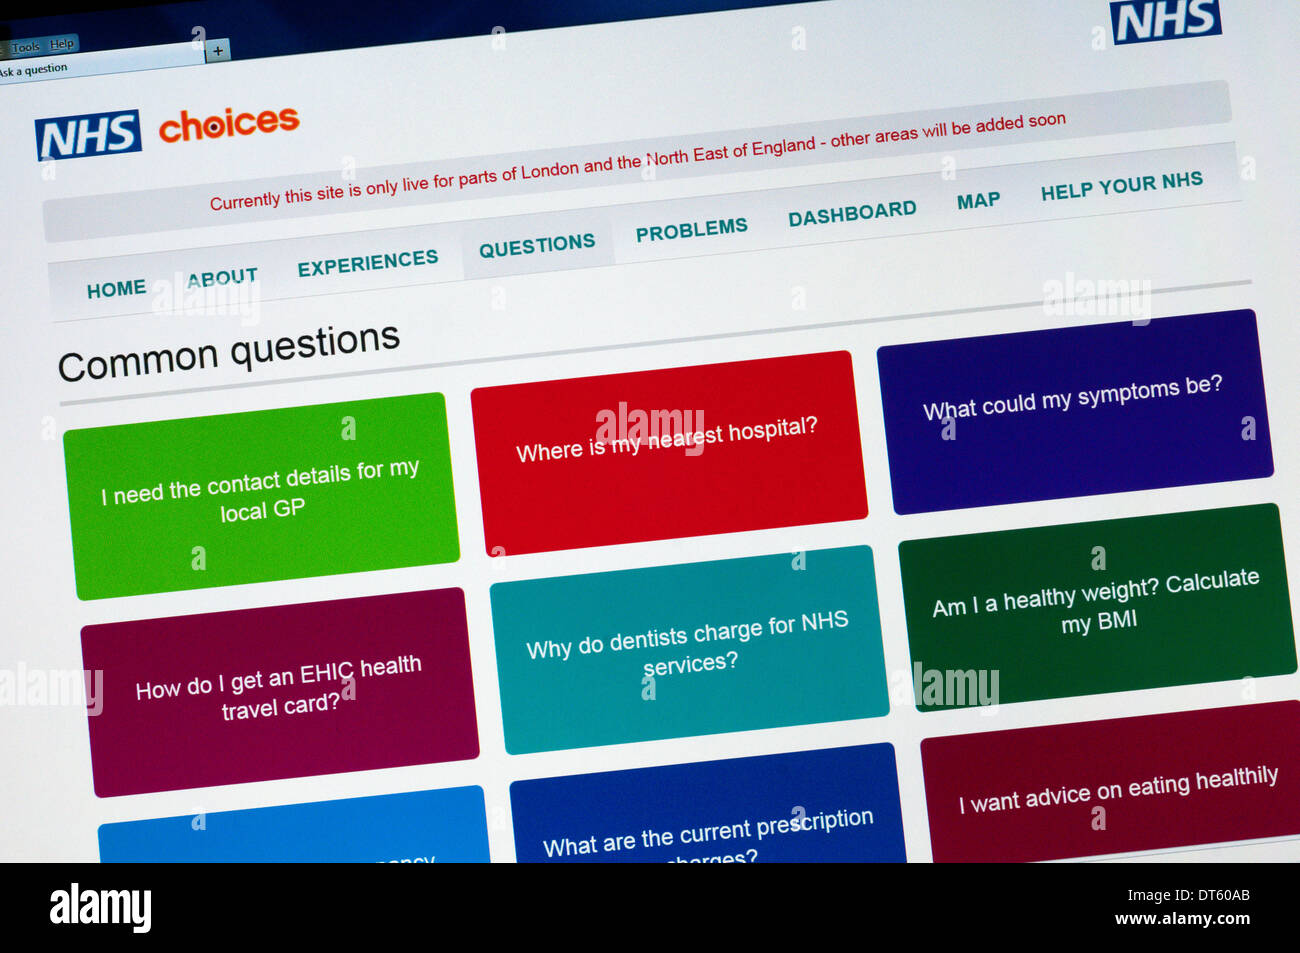 The NHS Choices website aims to provide a comprehensive health information service for the public. - Stock Image